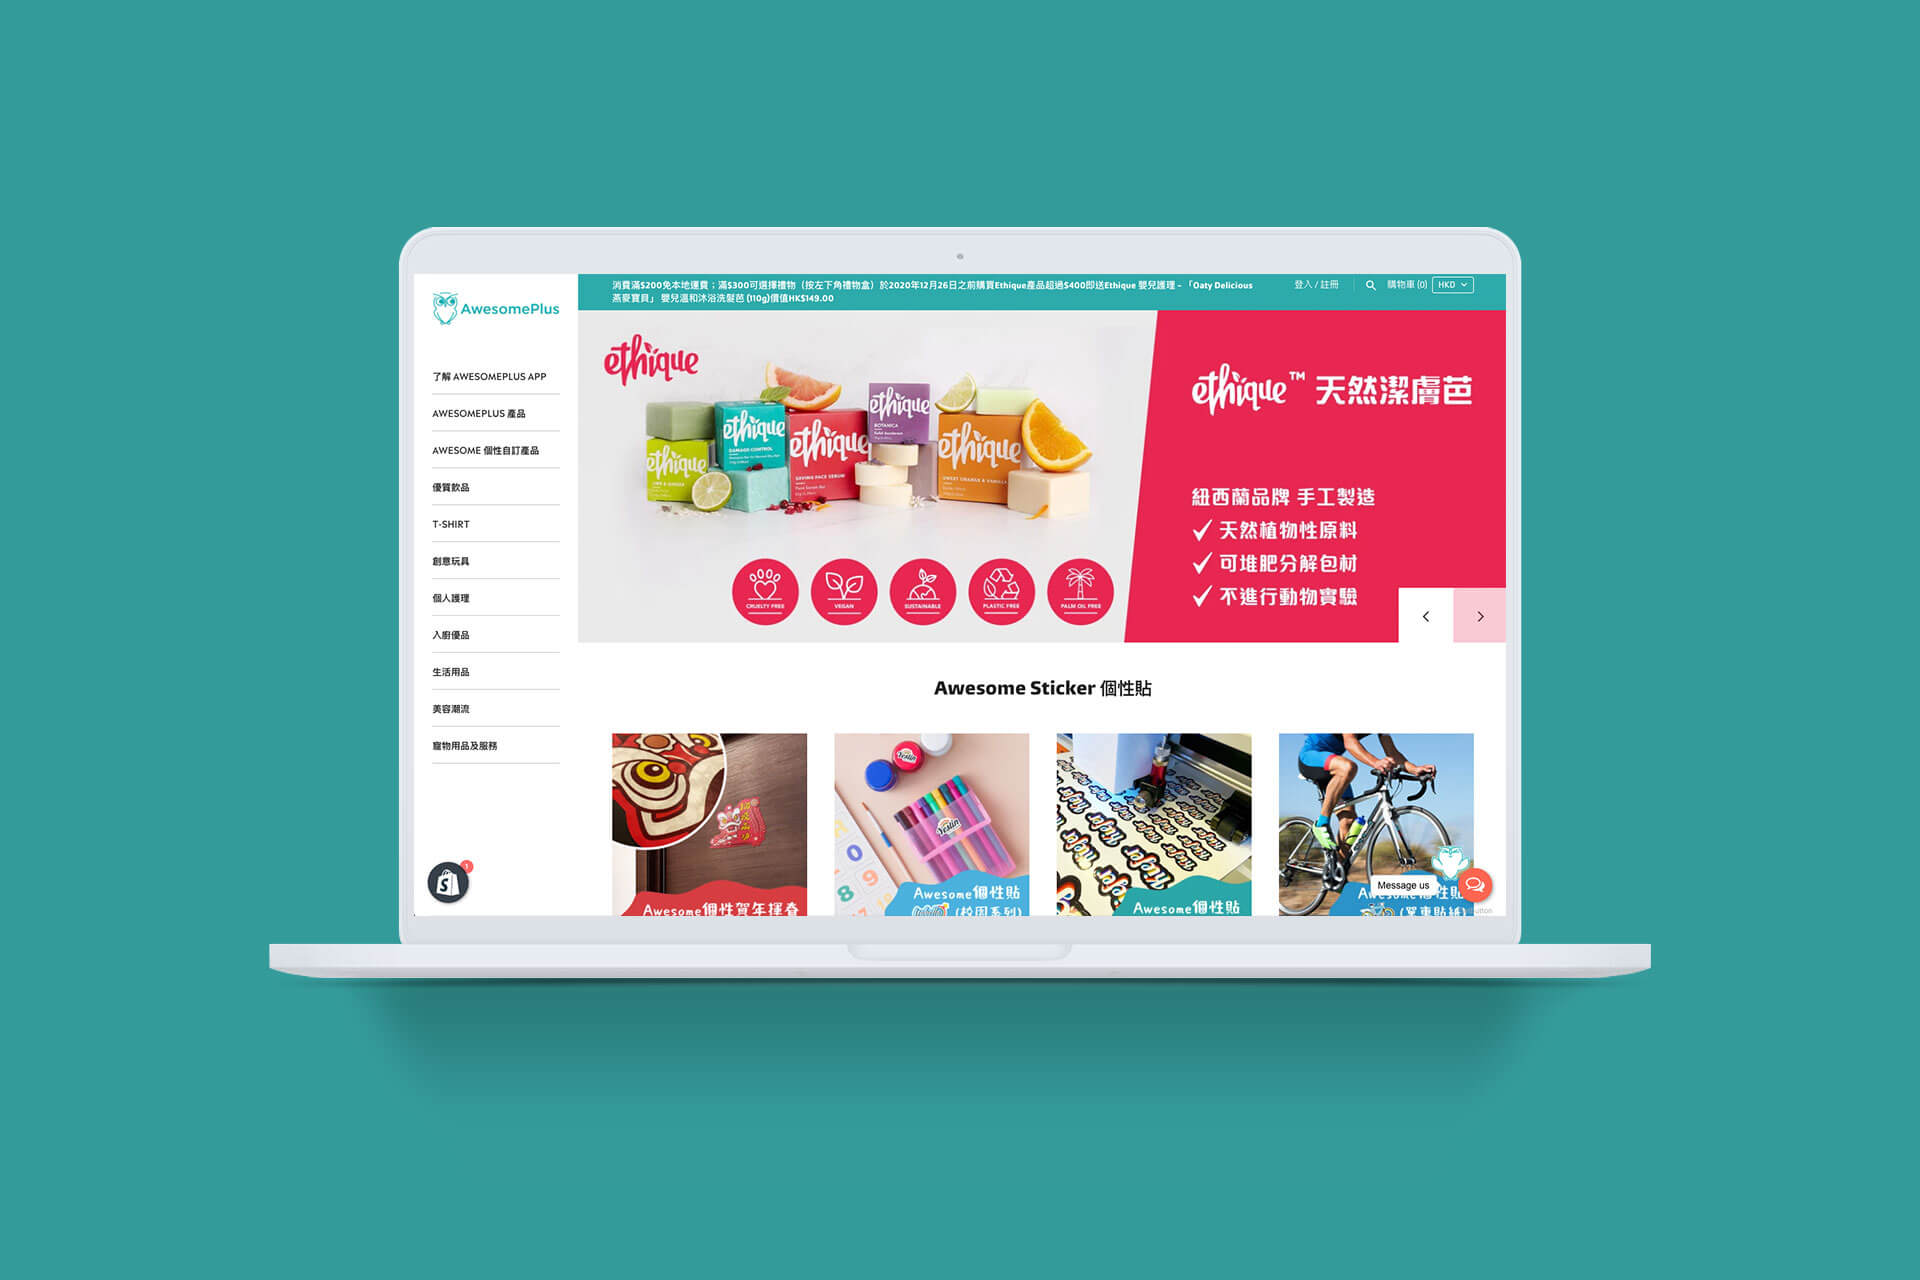 AwesomePlus 商店